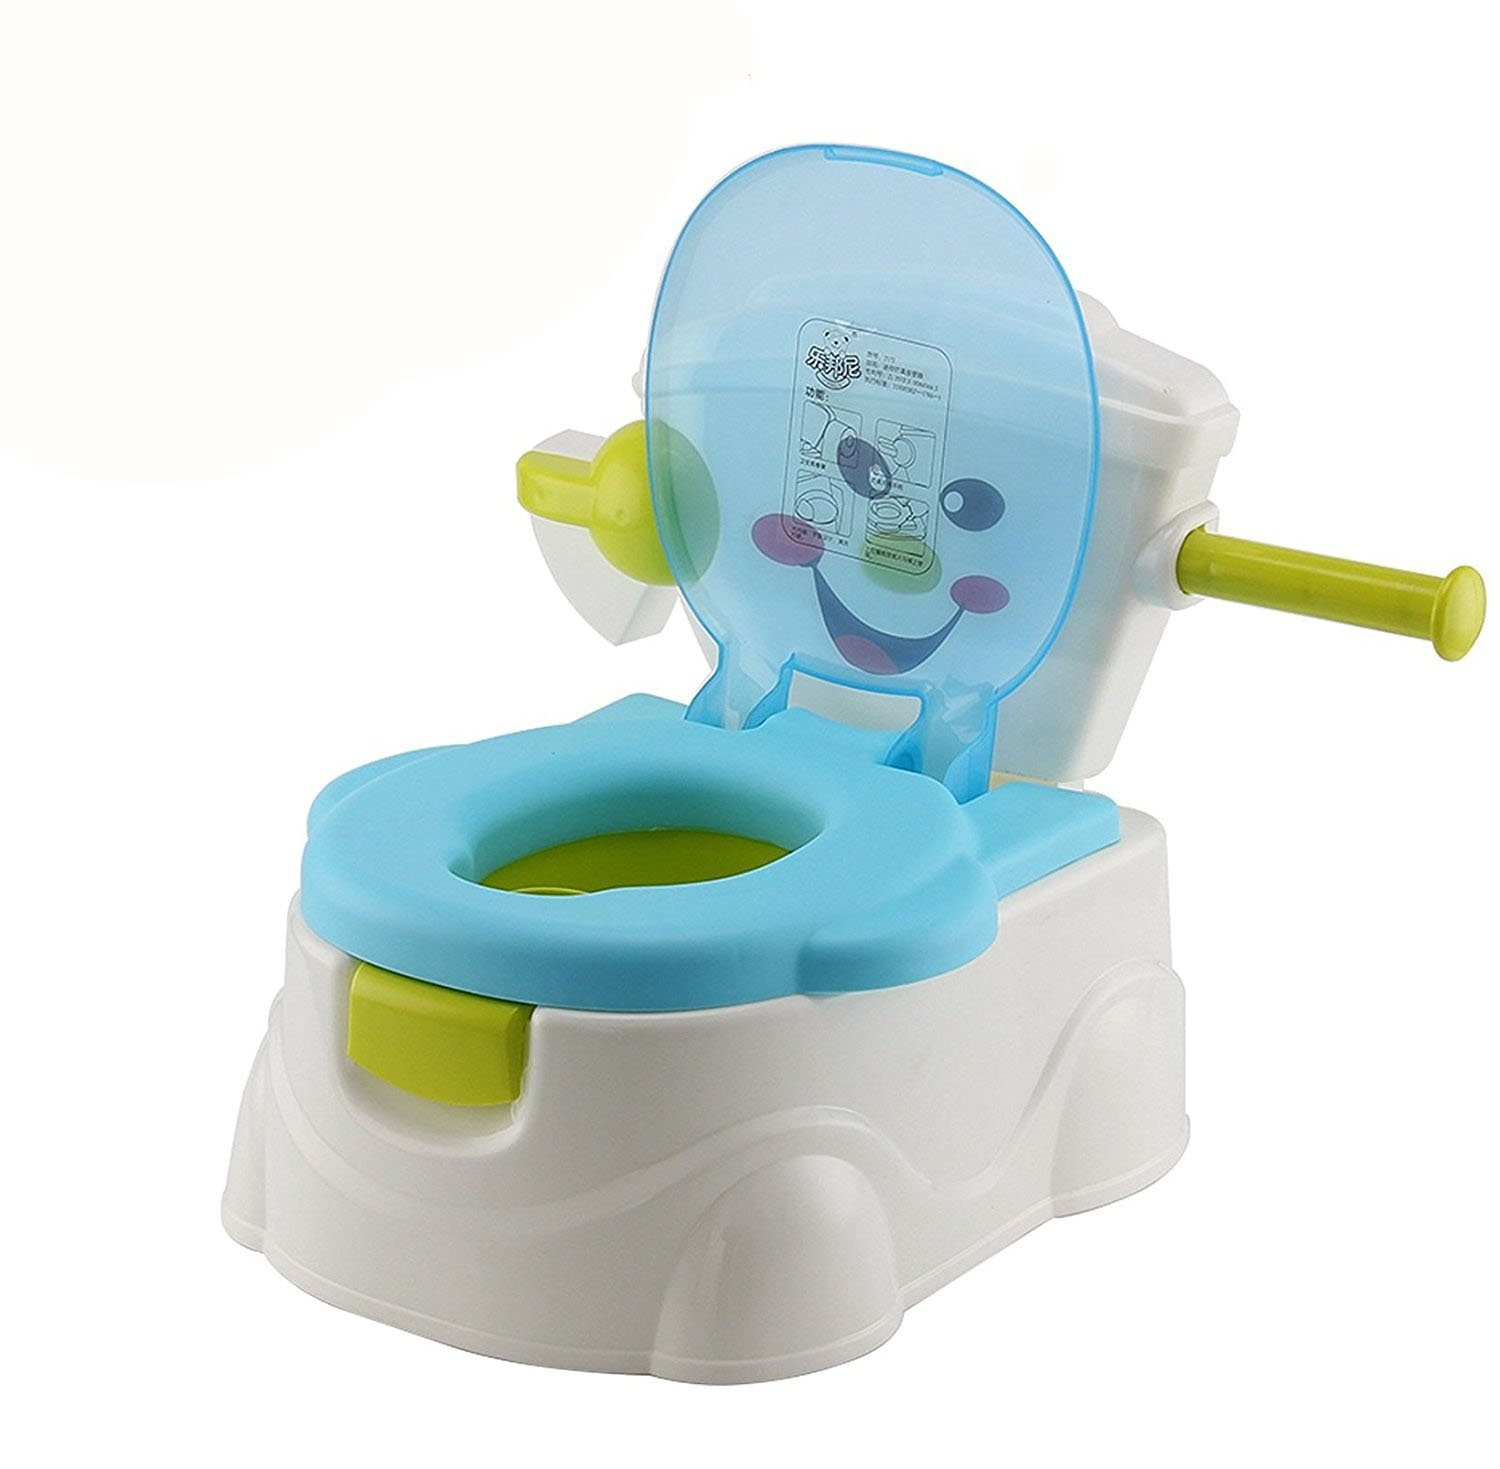 AllRight Kids Toilet Training Seat - Fun Toddler Baby Travel Potty Trainer Seat with Splash Guard – Removable Parts & Portable oem